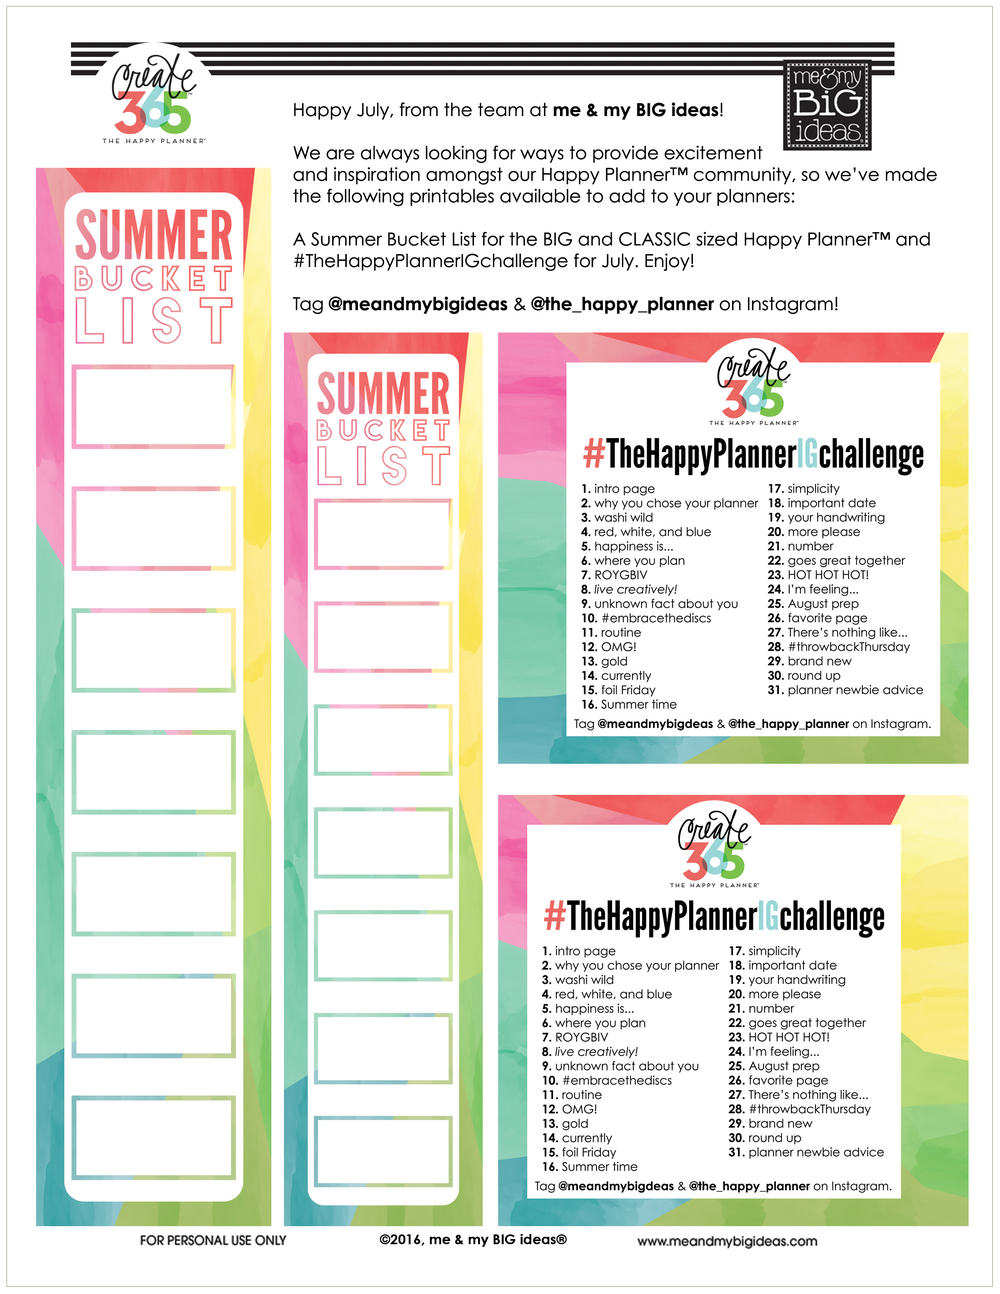 SUMMER BUCKET LIST & July 2016 IG challenge printable.jpg